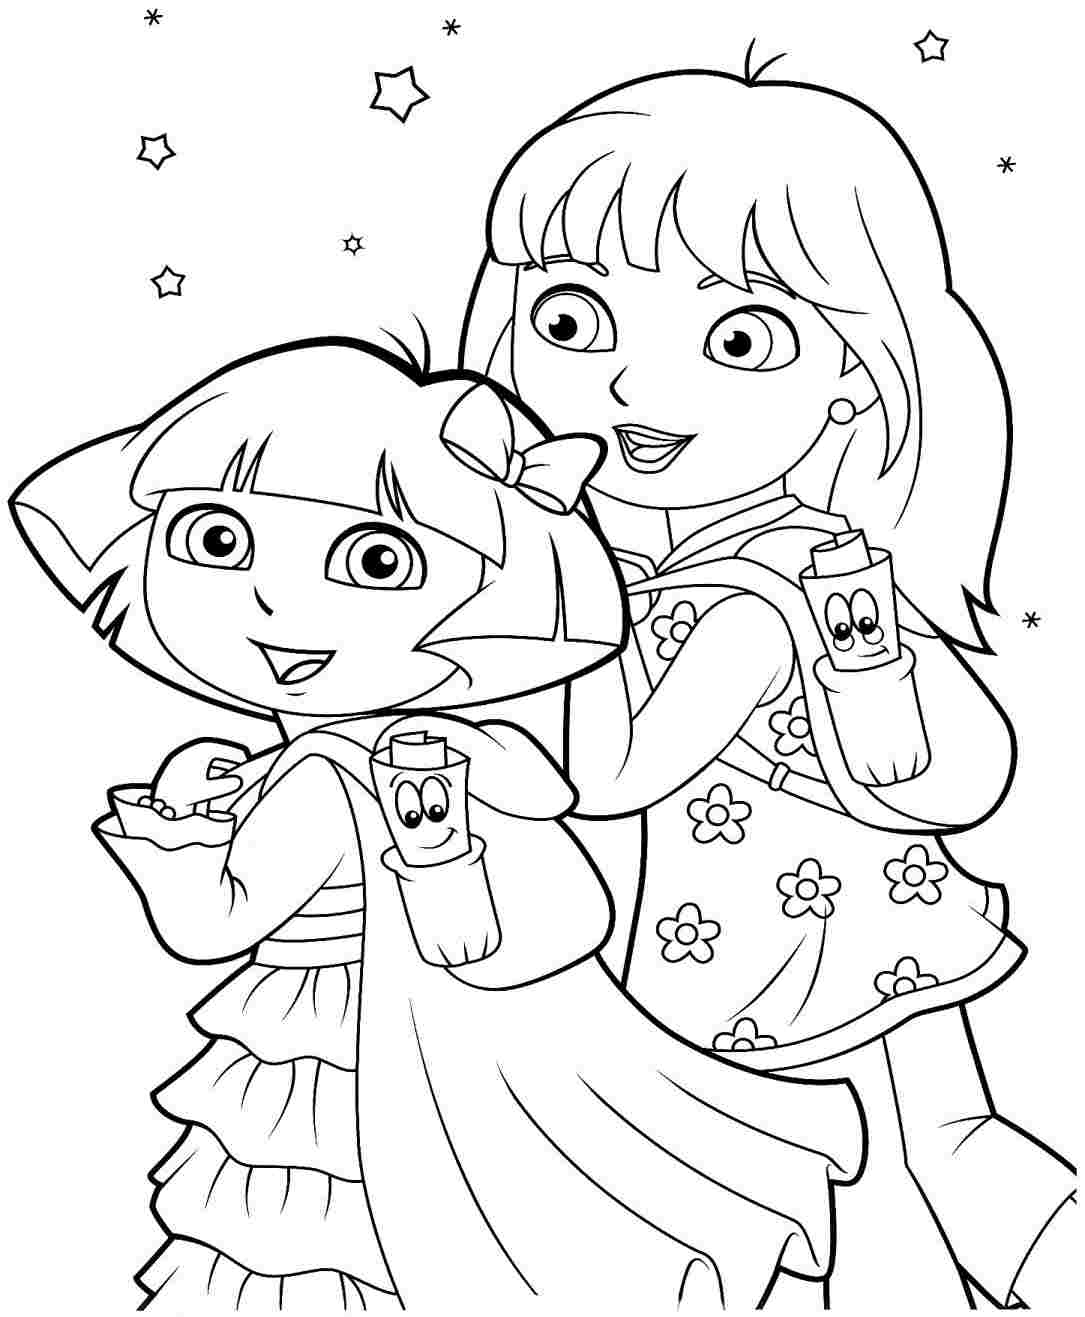 20 Dora and Friends Coloring Pages Collections | FREE COLORING PAGES